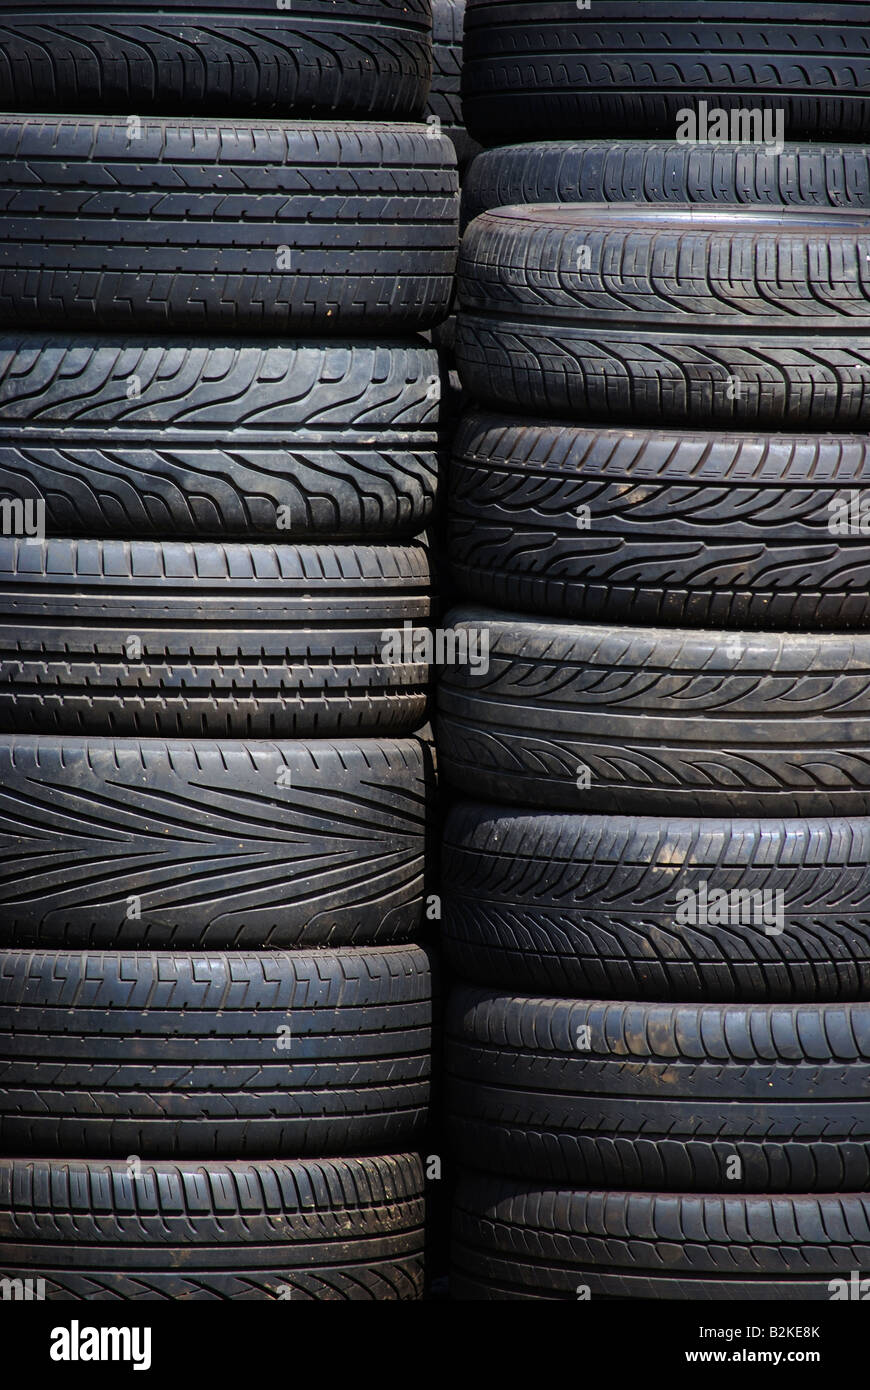 Used Tyres stacked - Stock Image